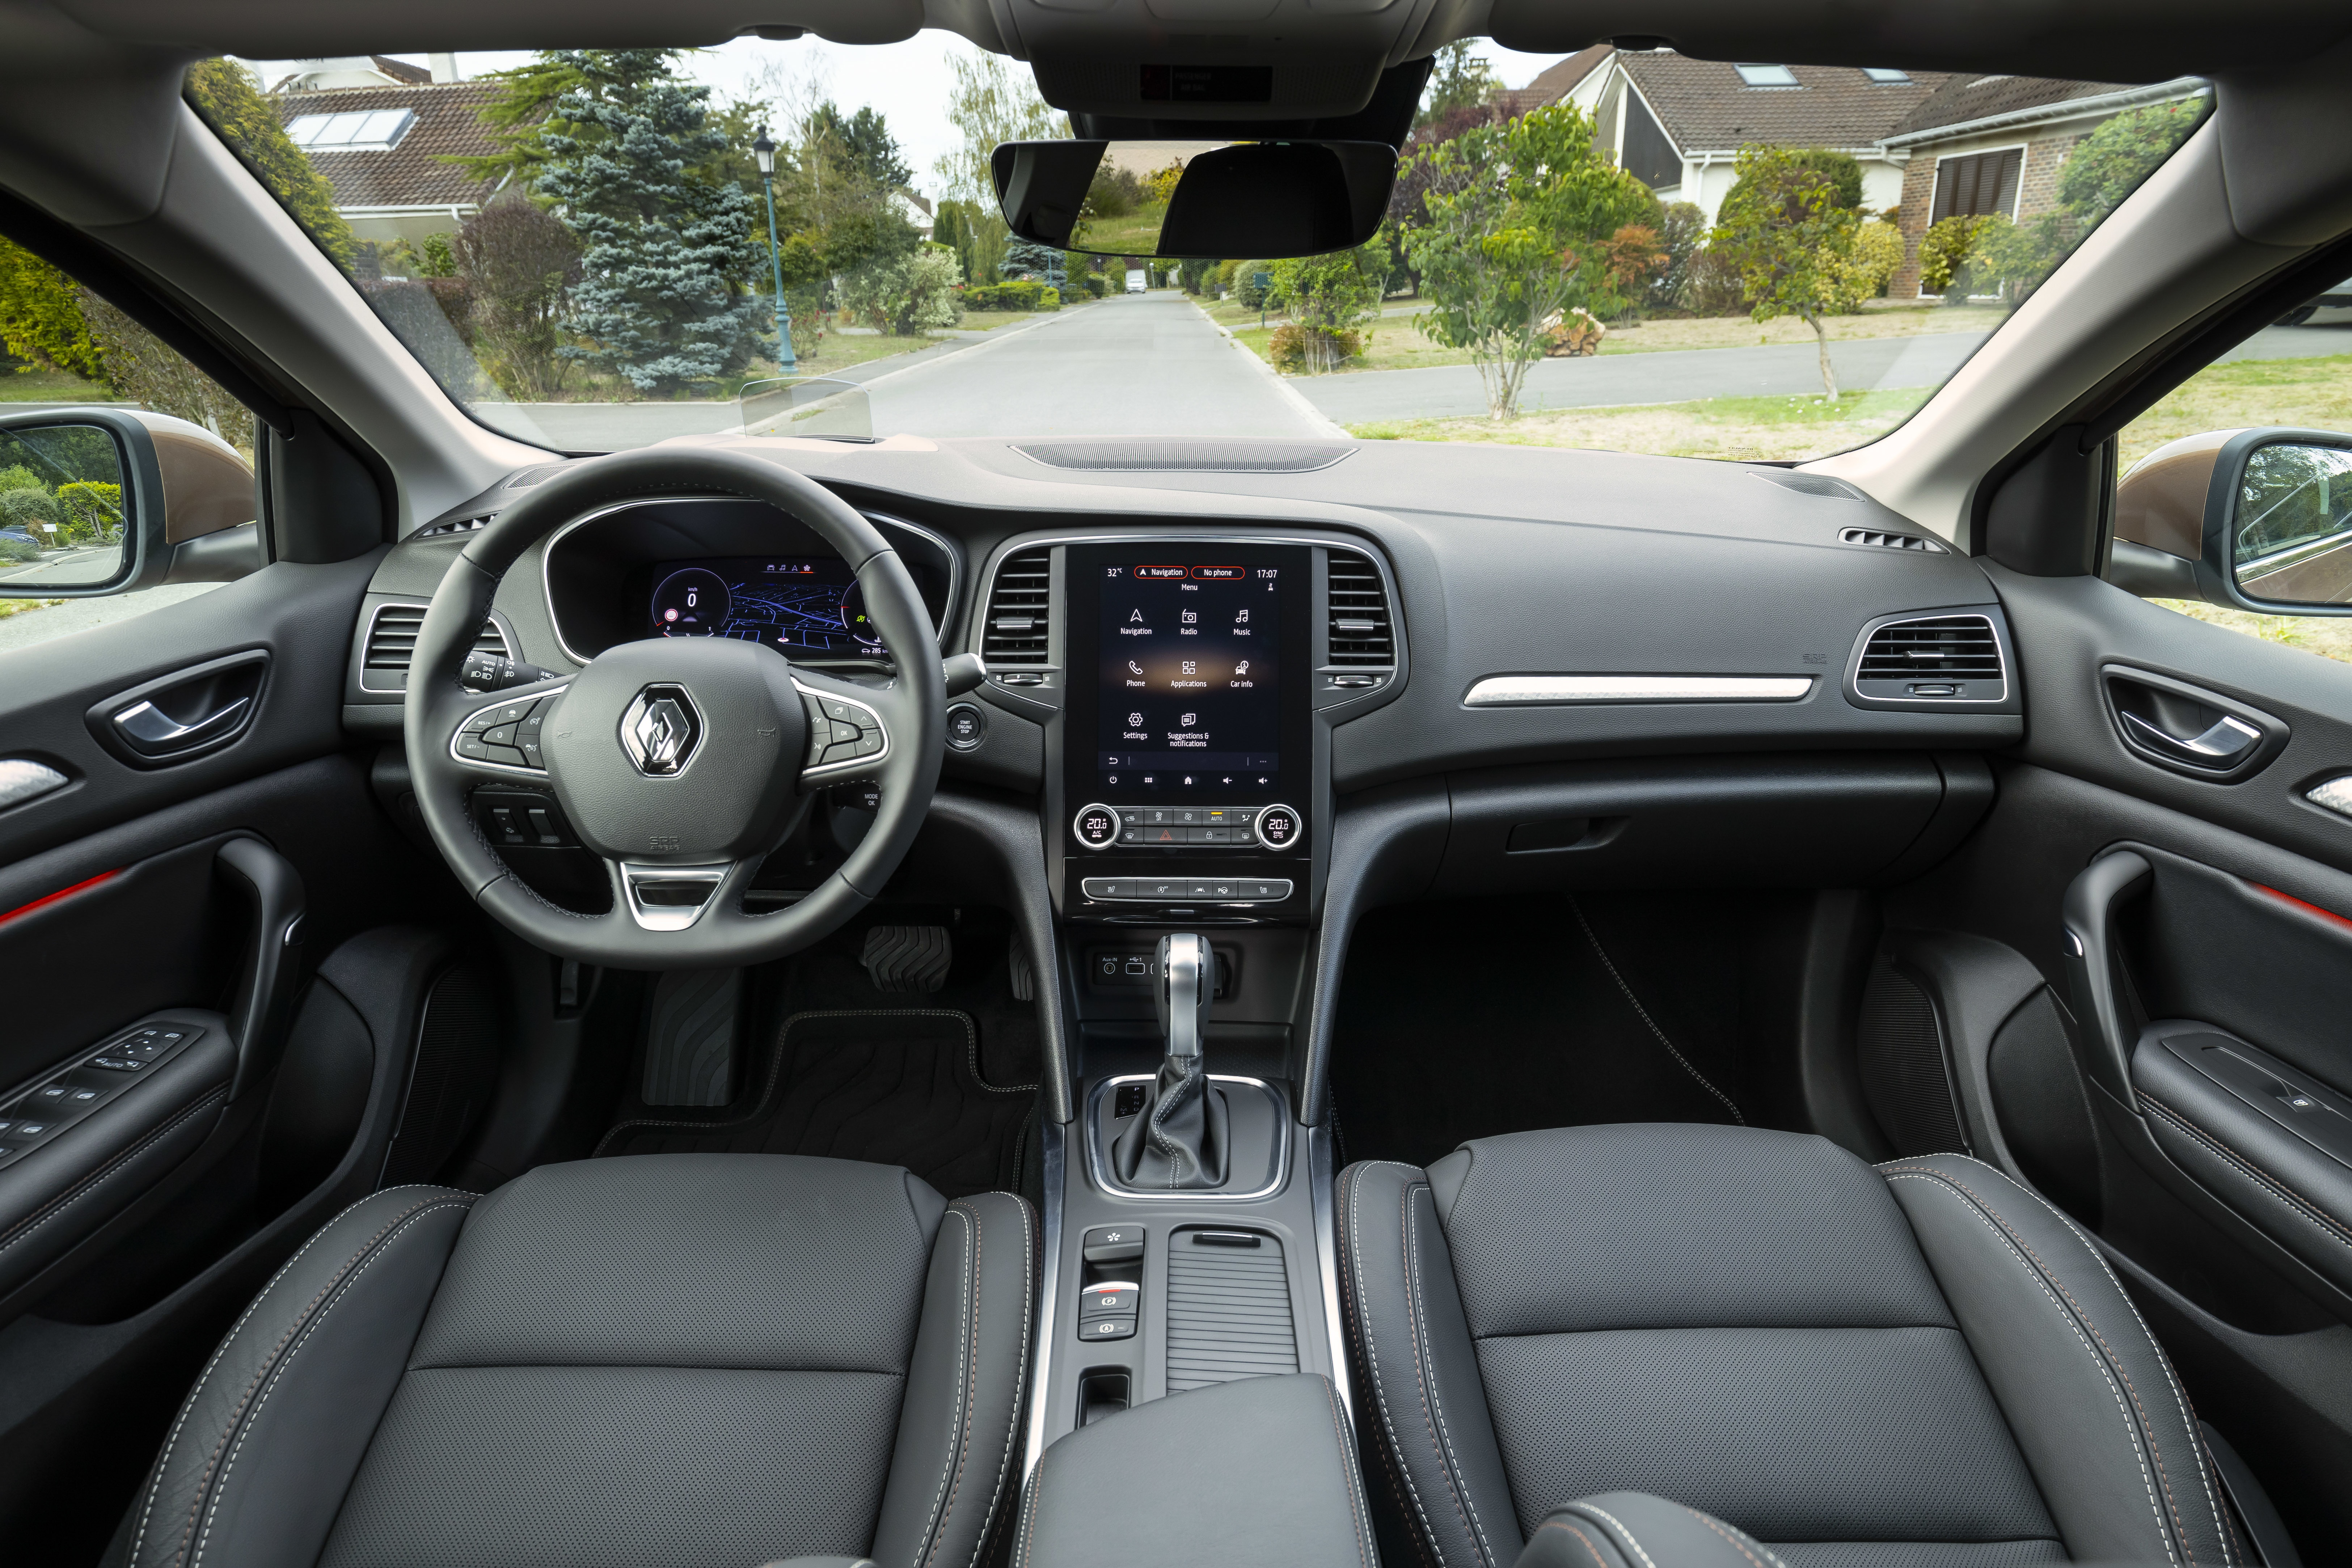 2020 - All New Renault MEGANE Hatchback - EDITION ONE LIMITED EDITION - Test drives